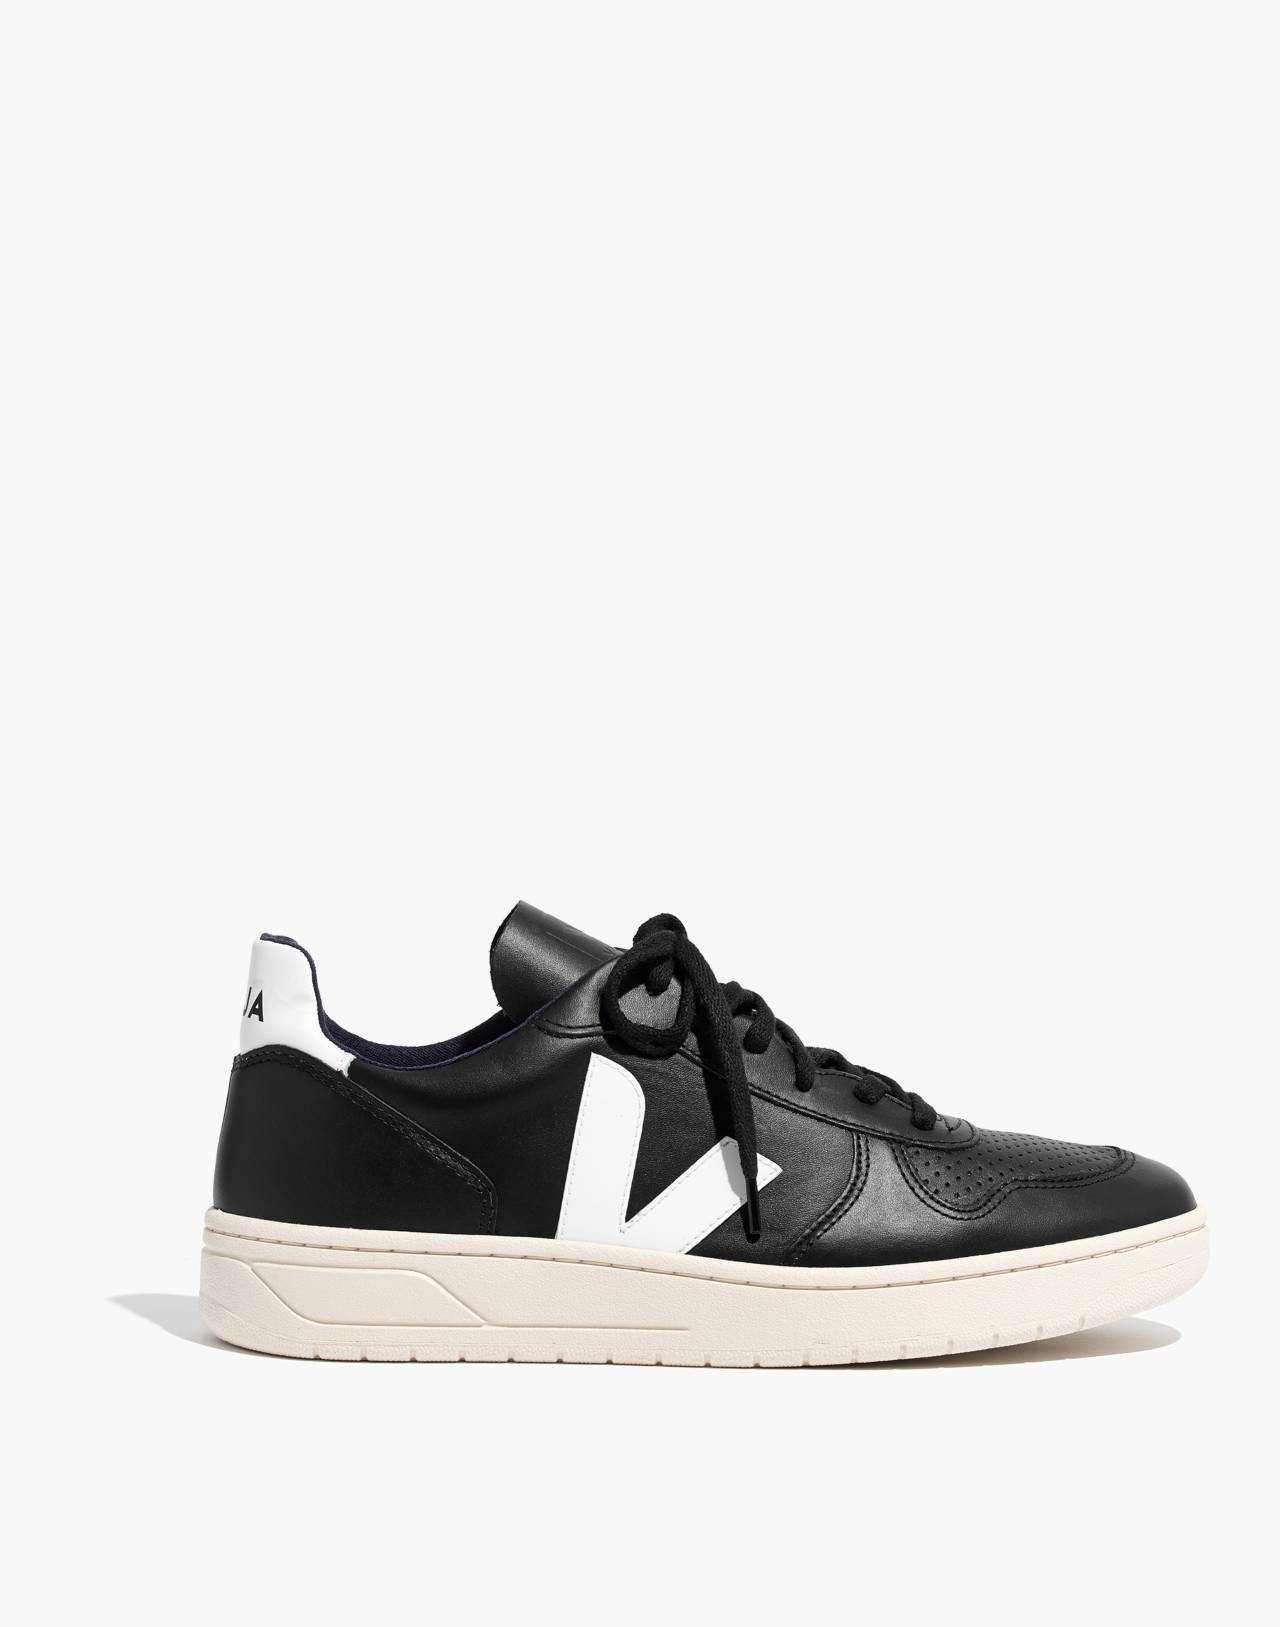 Veja™ Men's V-10 Sneakers in black white image 1